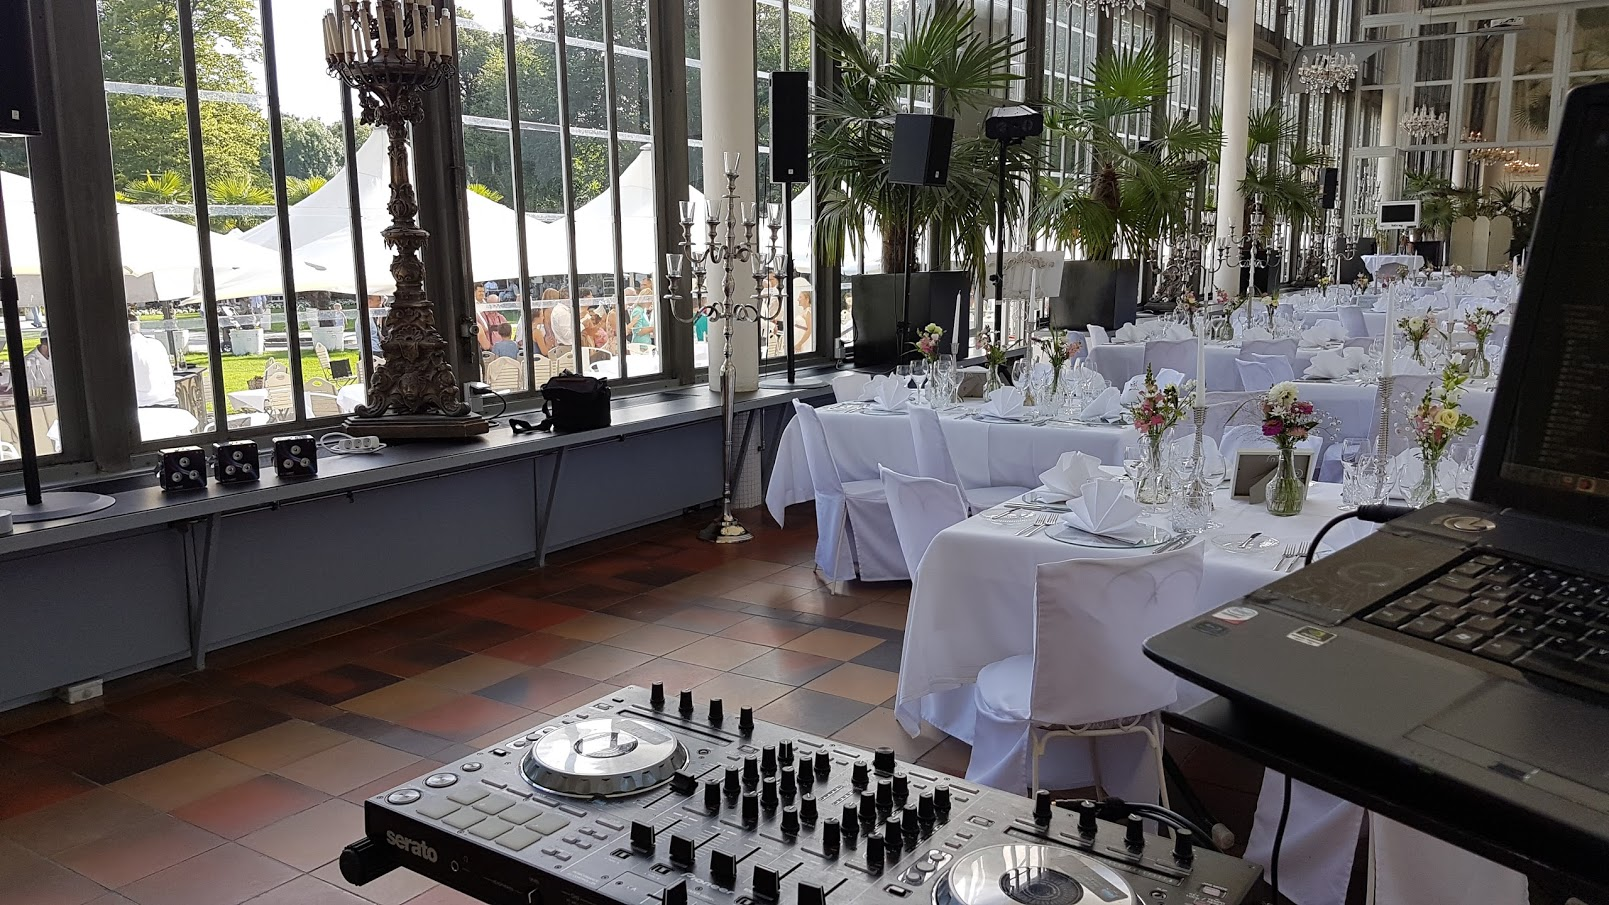 Wedding @ Schlosscafe Palmenhaus Munich